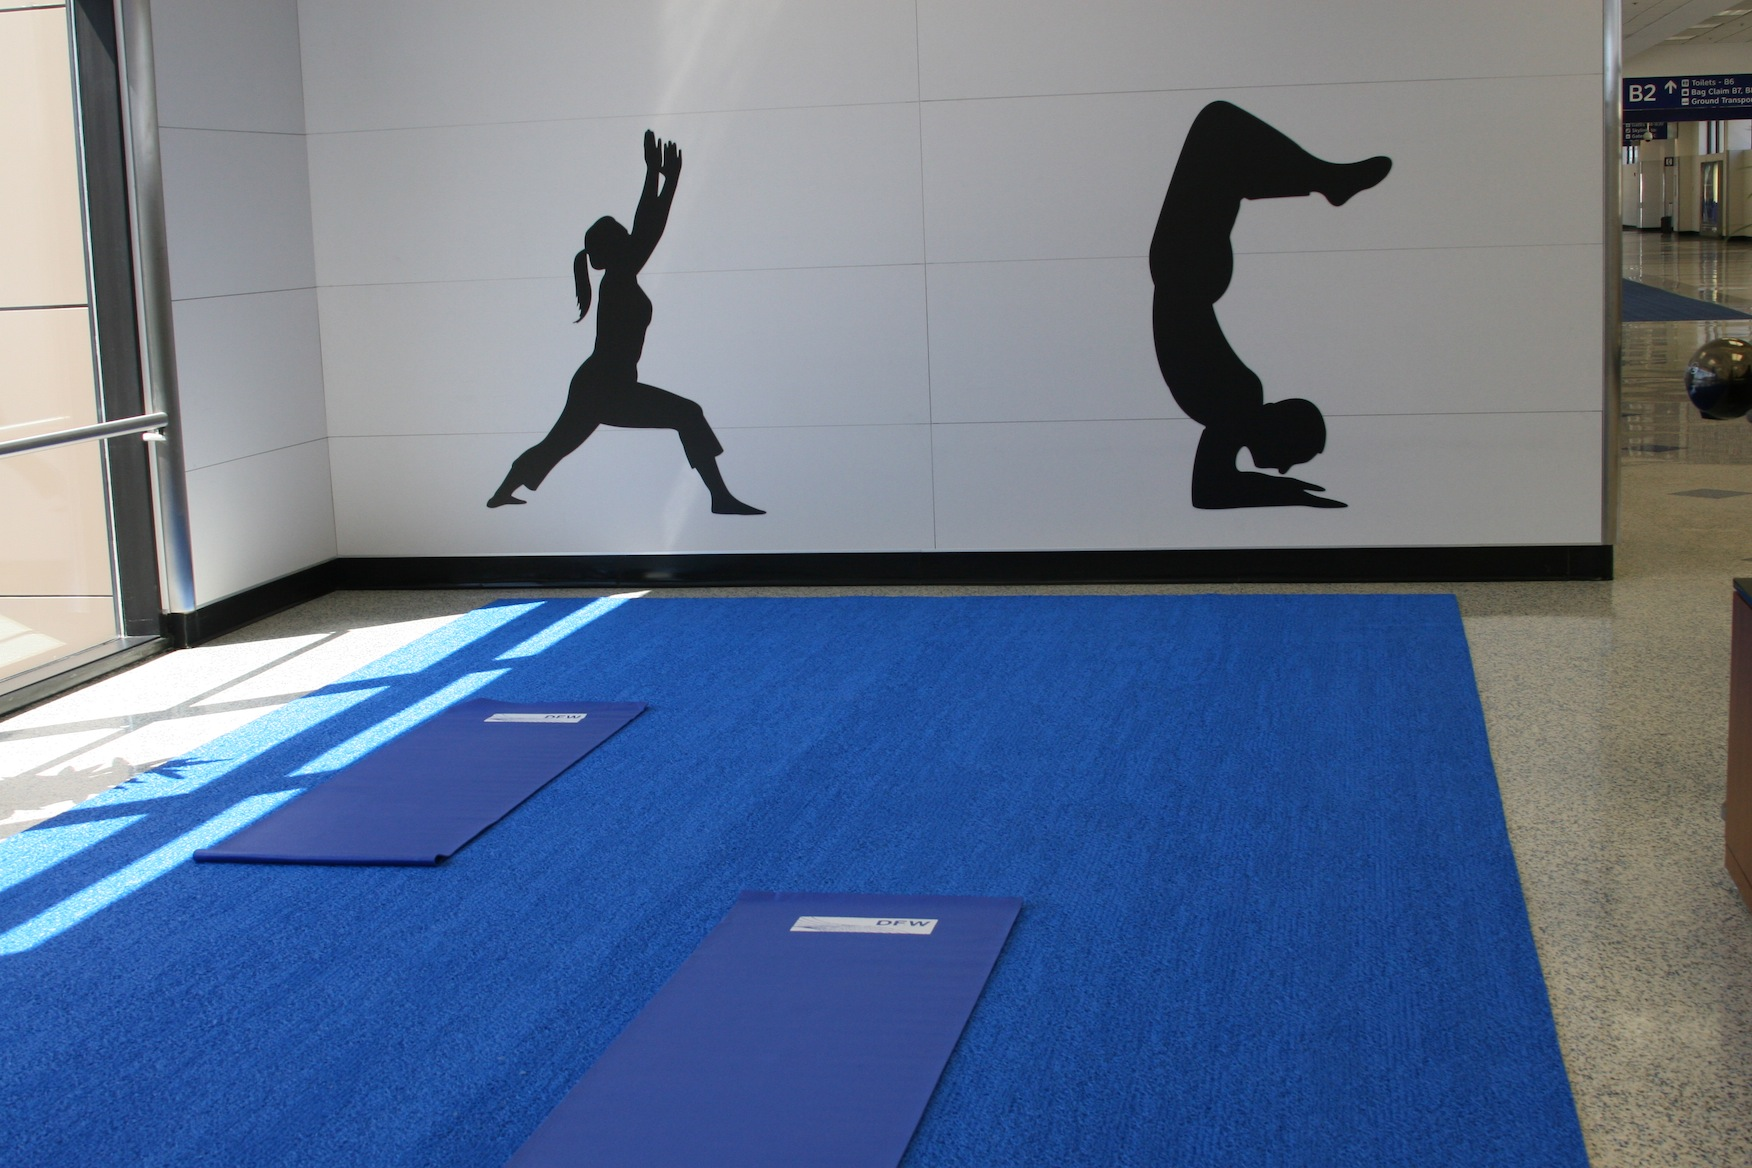 The meditation and yoga space at DFW